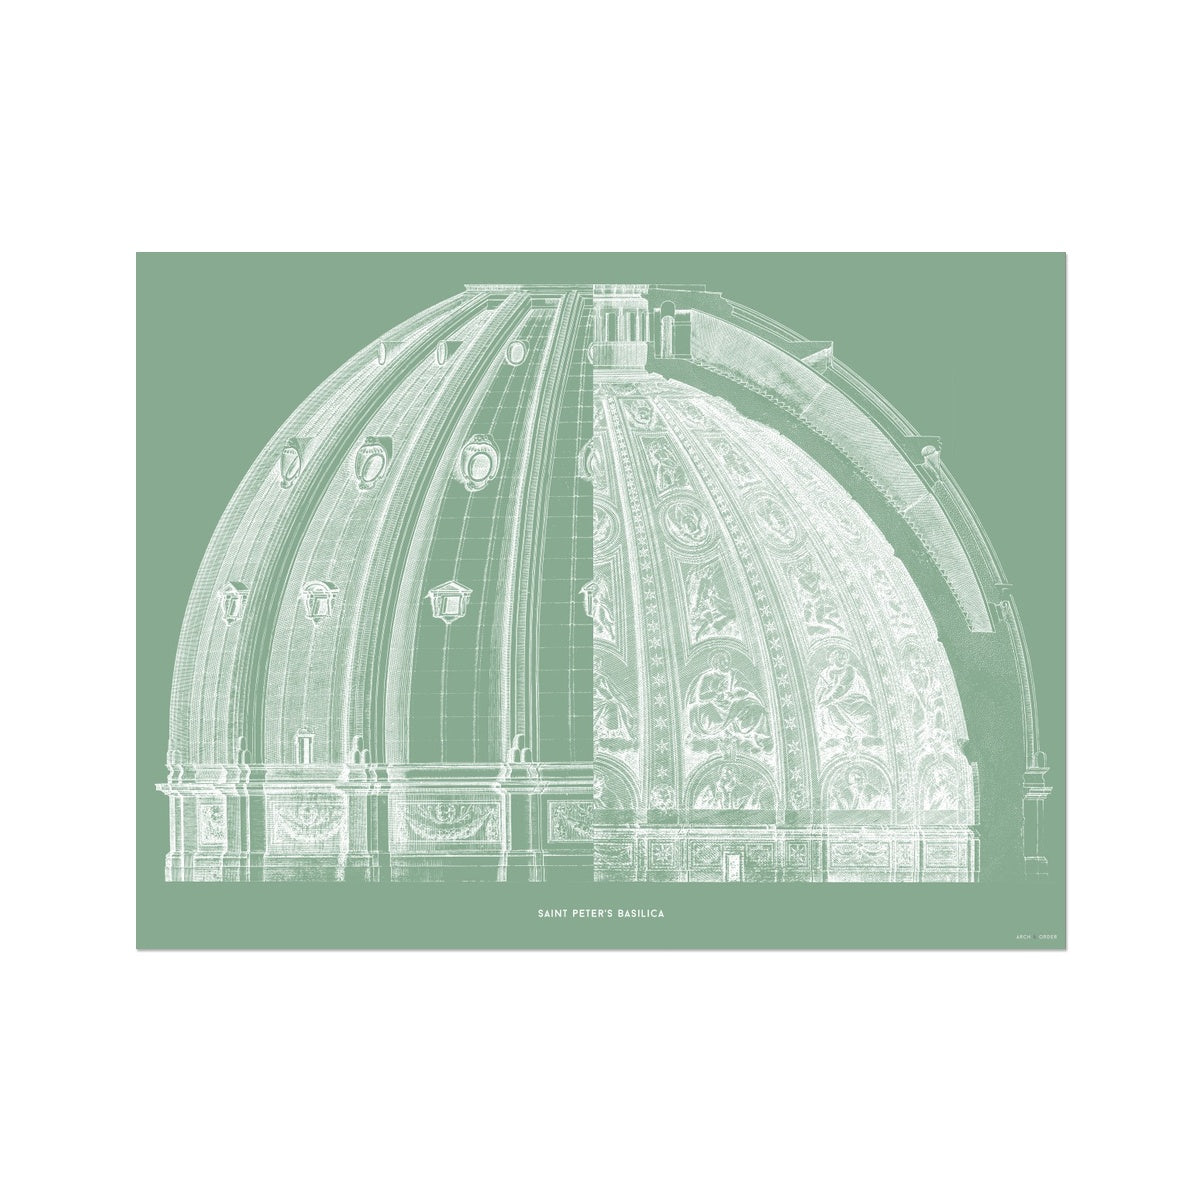 Saint Peter's Basilica - Dome Cross Section - Green -  Etching Paper Print